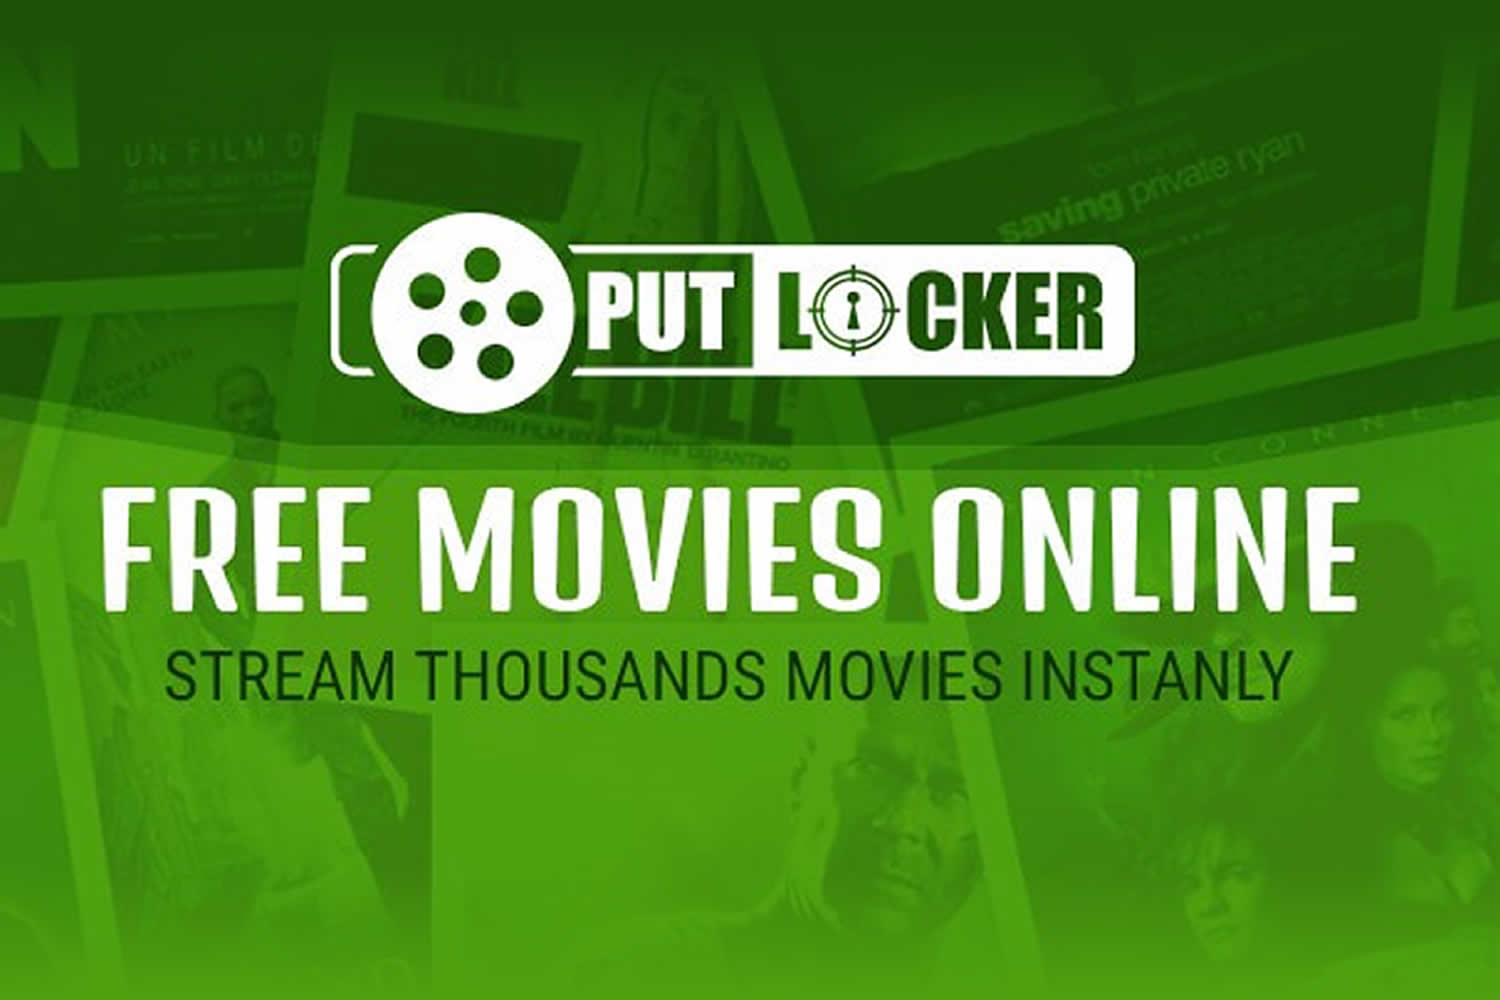 Watch Nevers Putlocker Movies